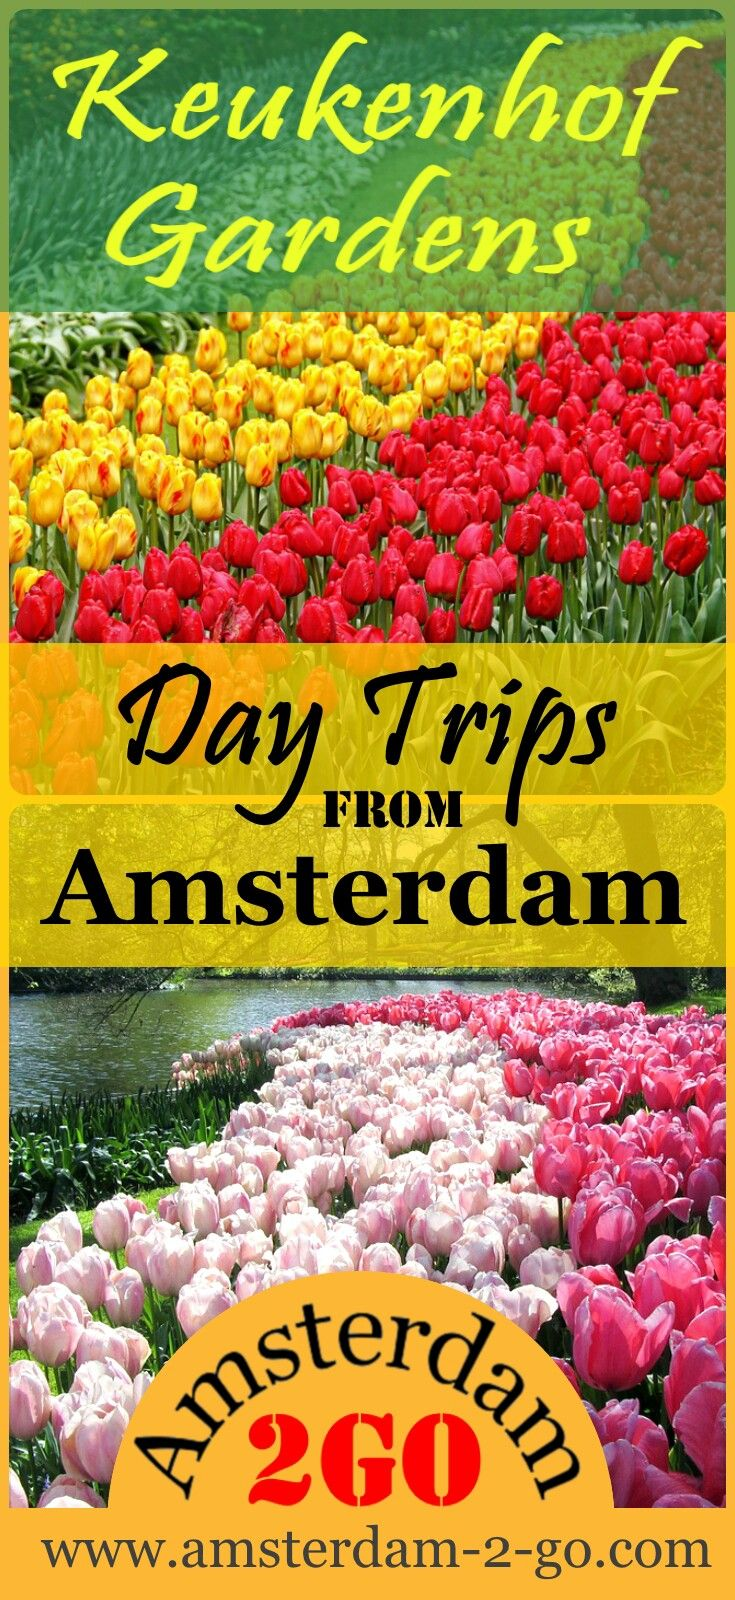 Each year during a limited time of eight weeks, the Keukenhof Gardens and Tulip Fields come alive with seven million spring bulbs, hyacinths, tulips and daffodils.   amsterdam travel, netherlands, red light district, keukenhof gardens, things to do in amsterdam, amsterdam market, amsterdam food, amsterdam tours, tips for visiting amsterdam, tulip blossoms, flower blossoms, what to see around amsterdam